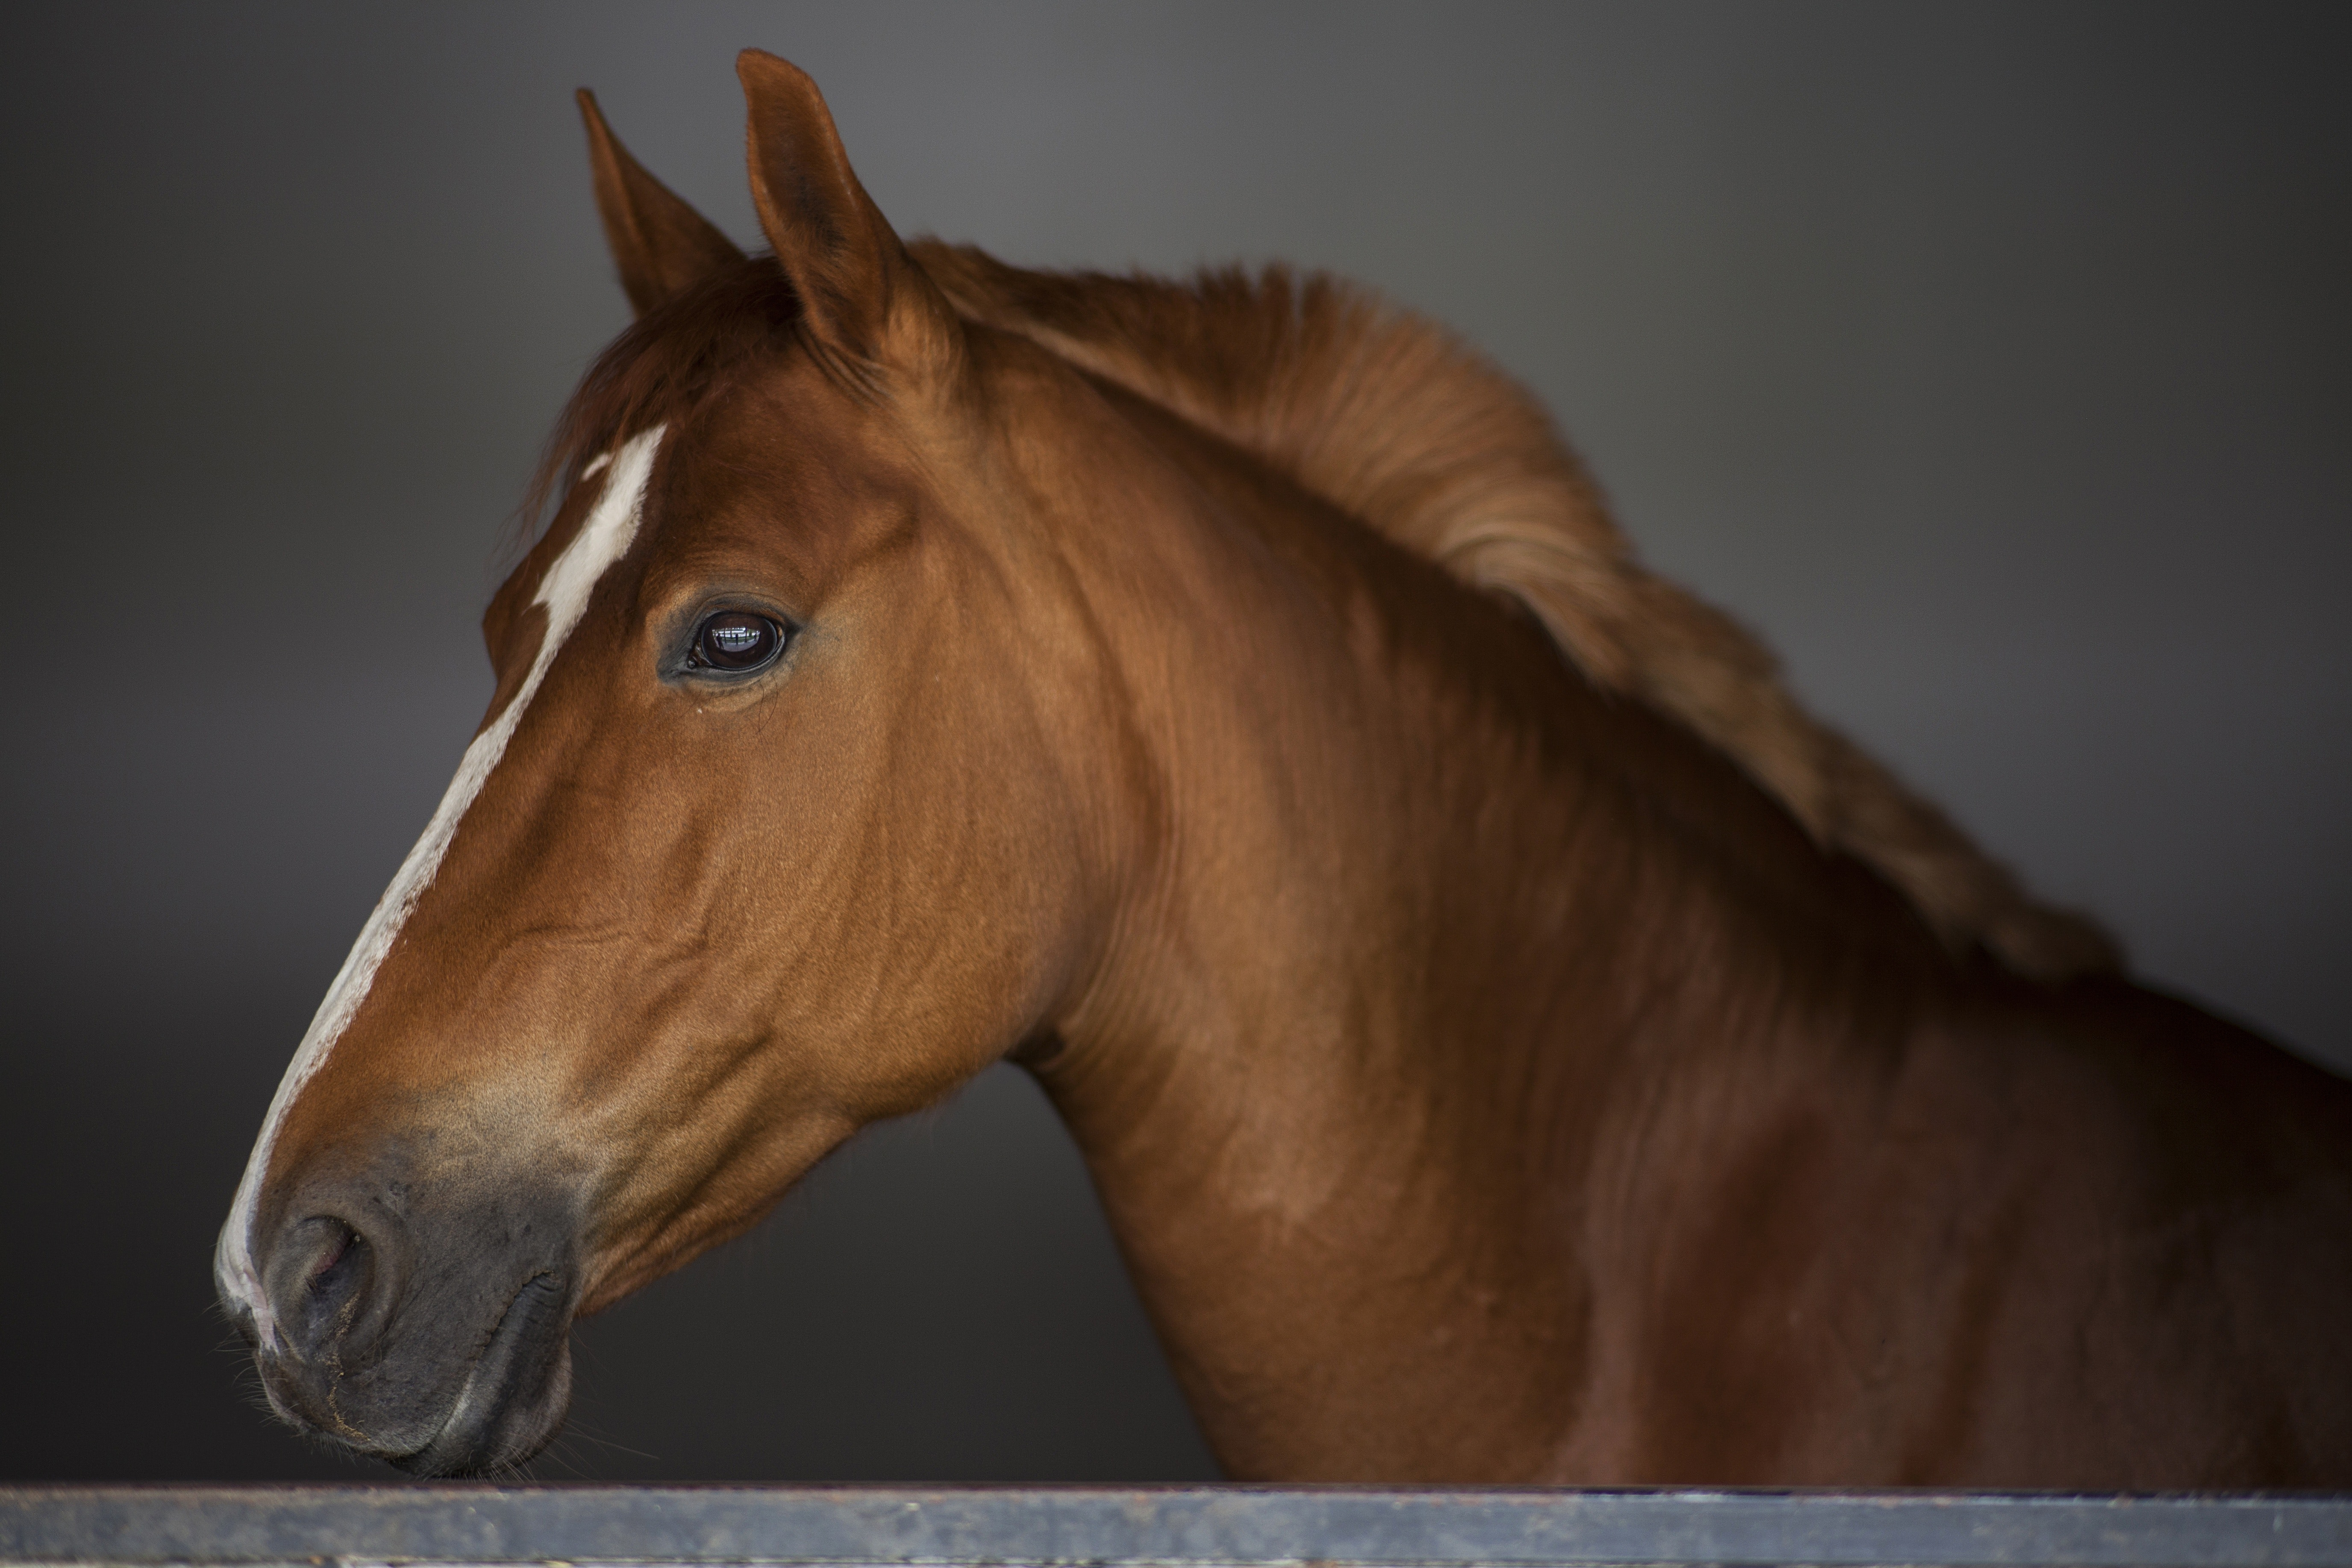 Your horse's head in your hands